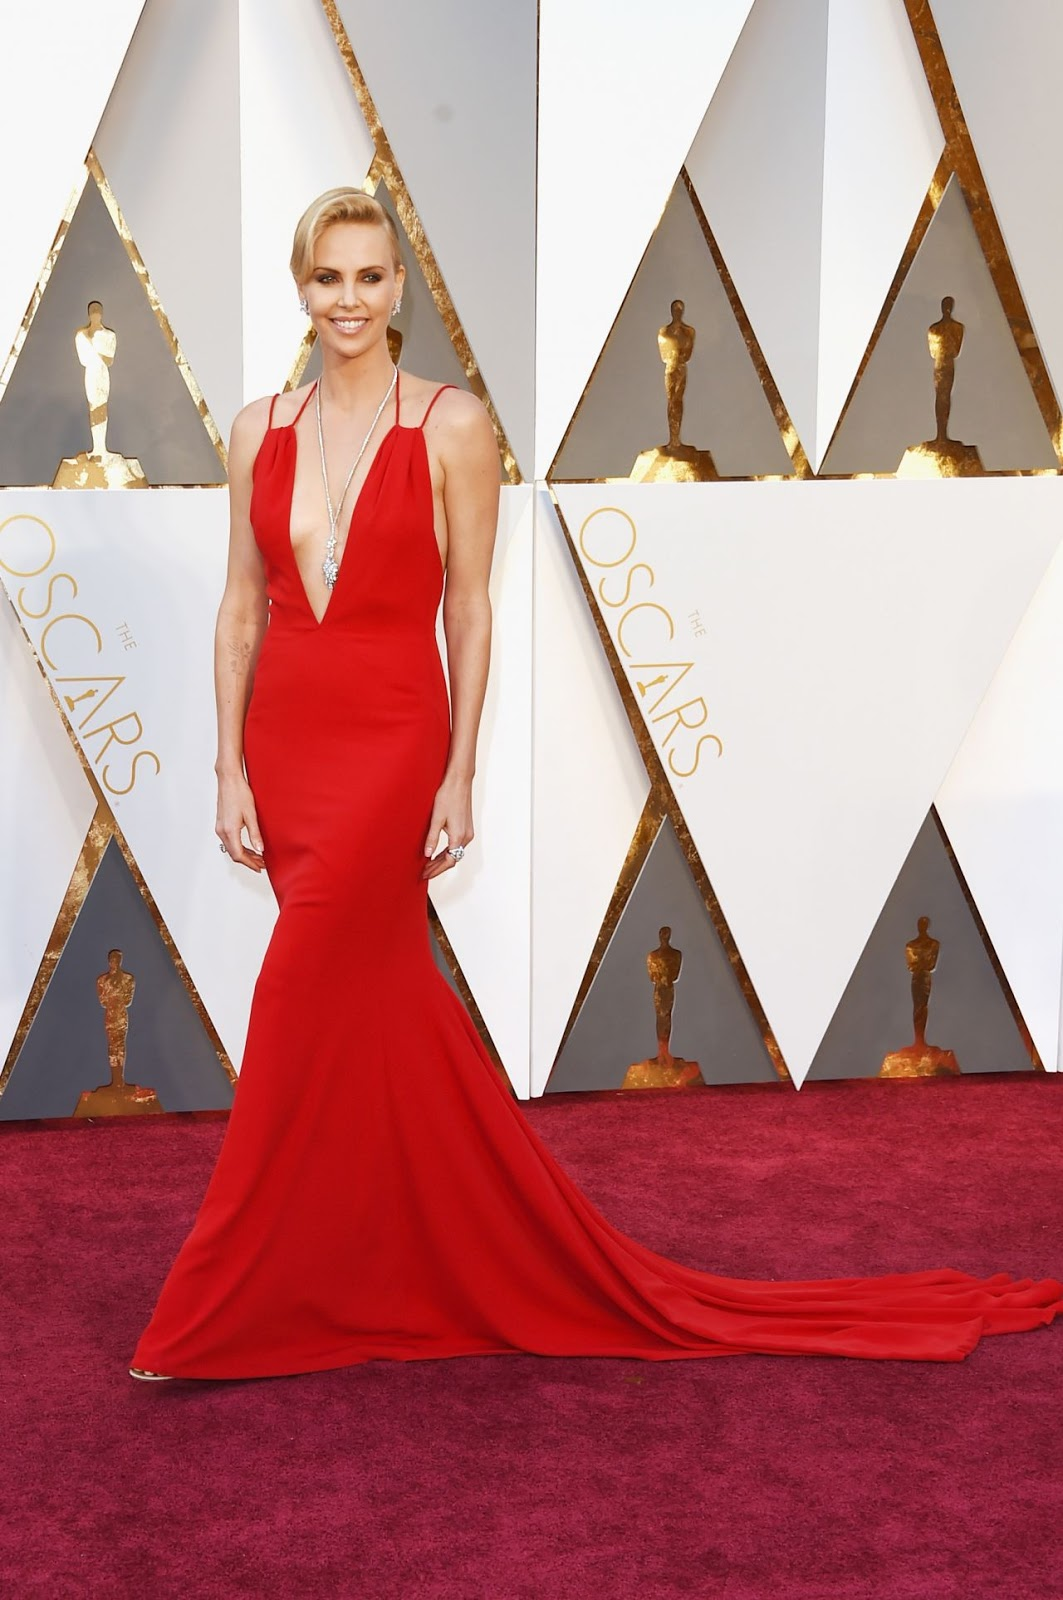 Charlize Theron is red hot at the Oscars 2016